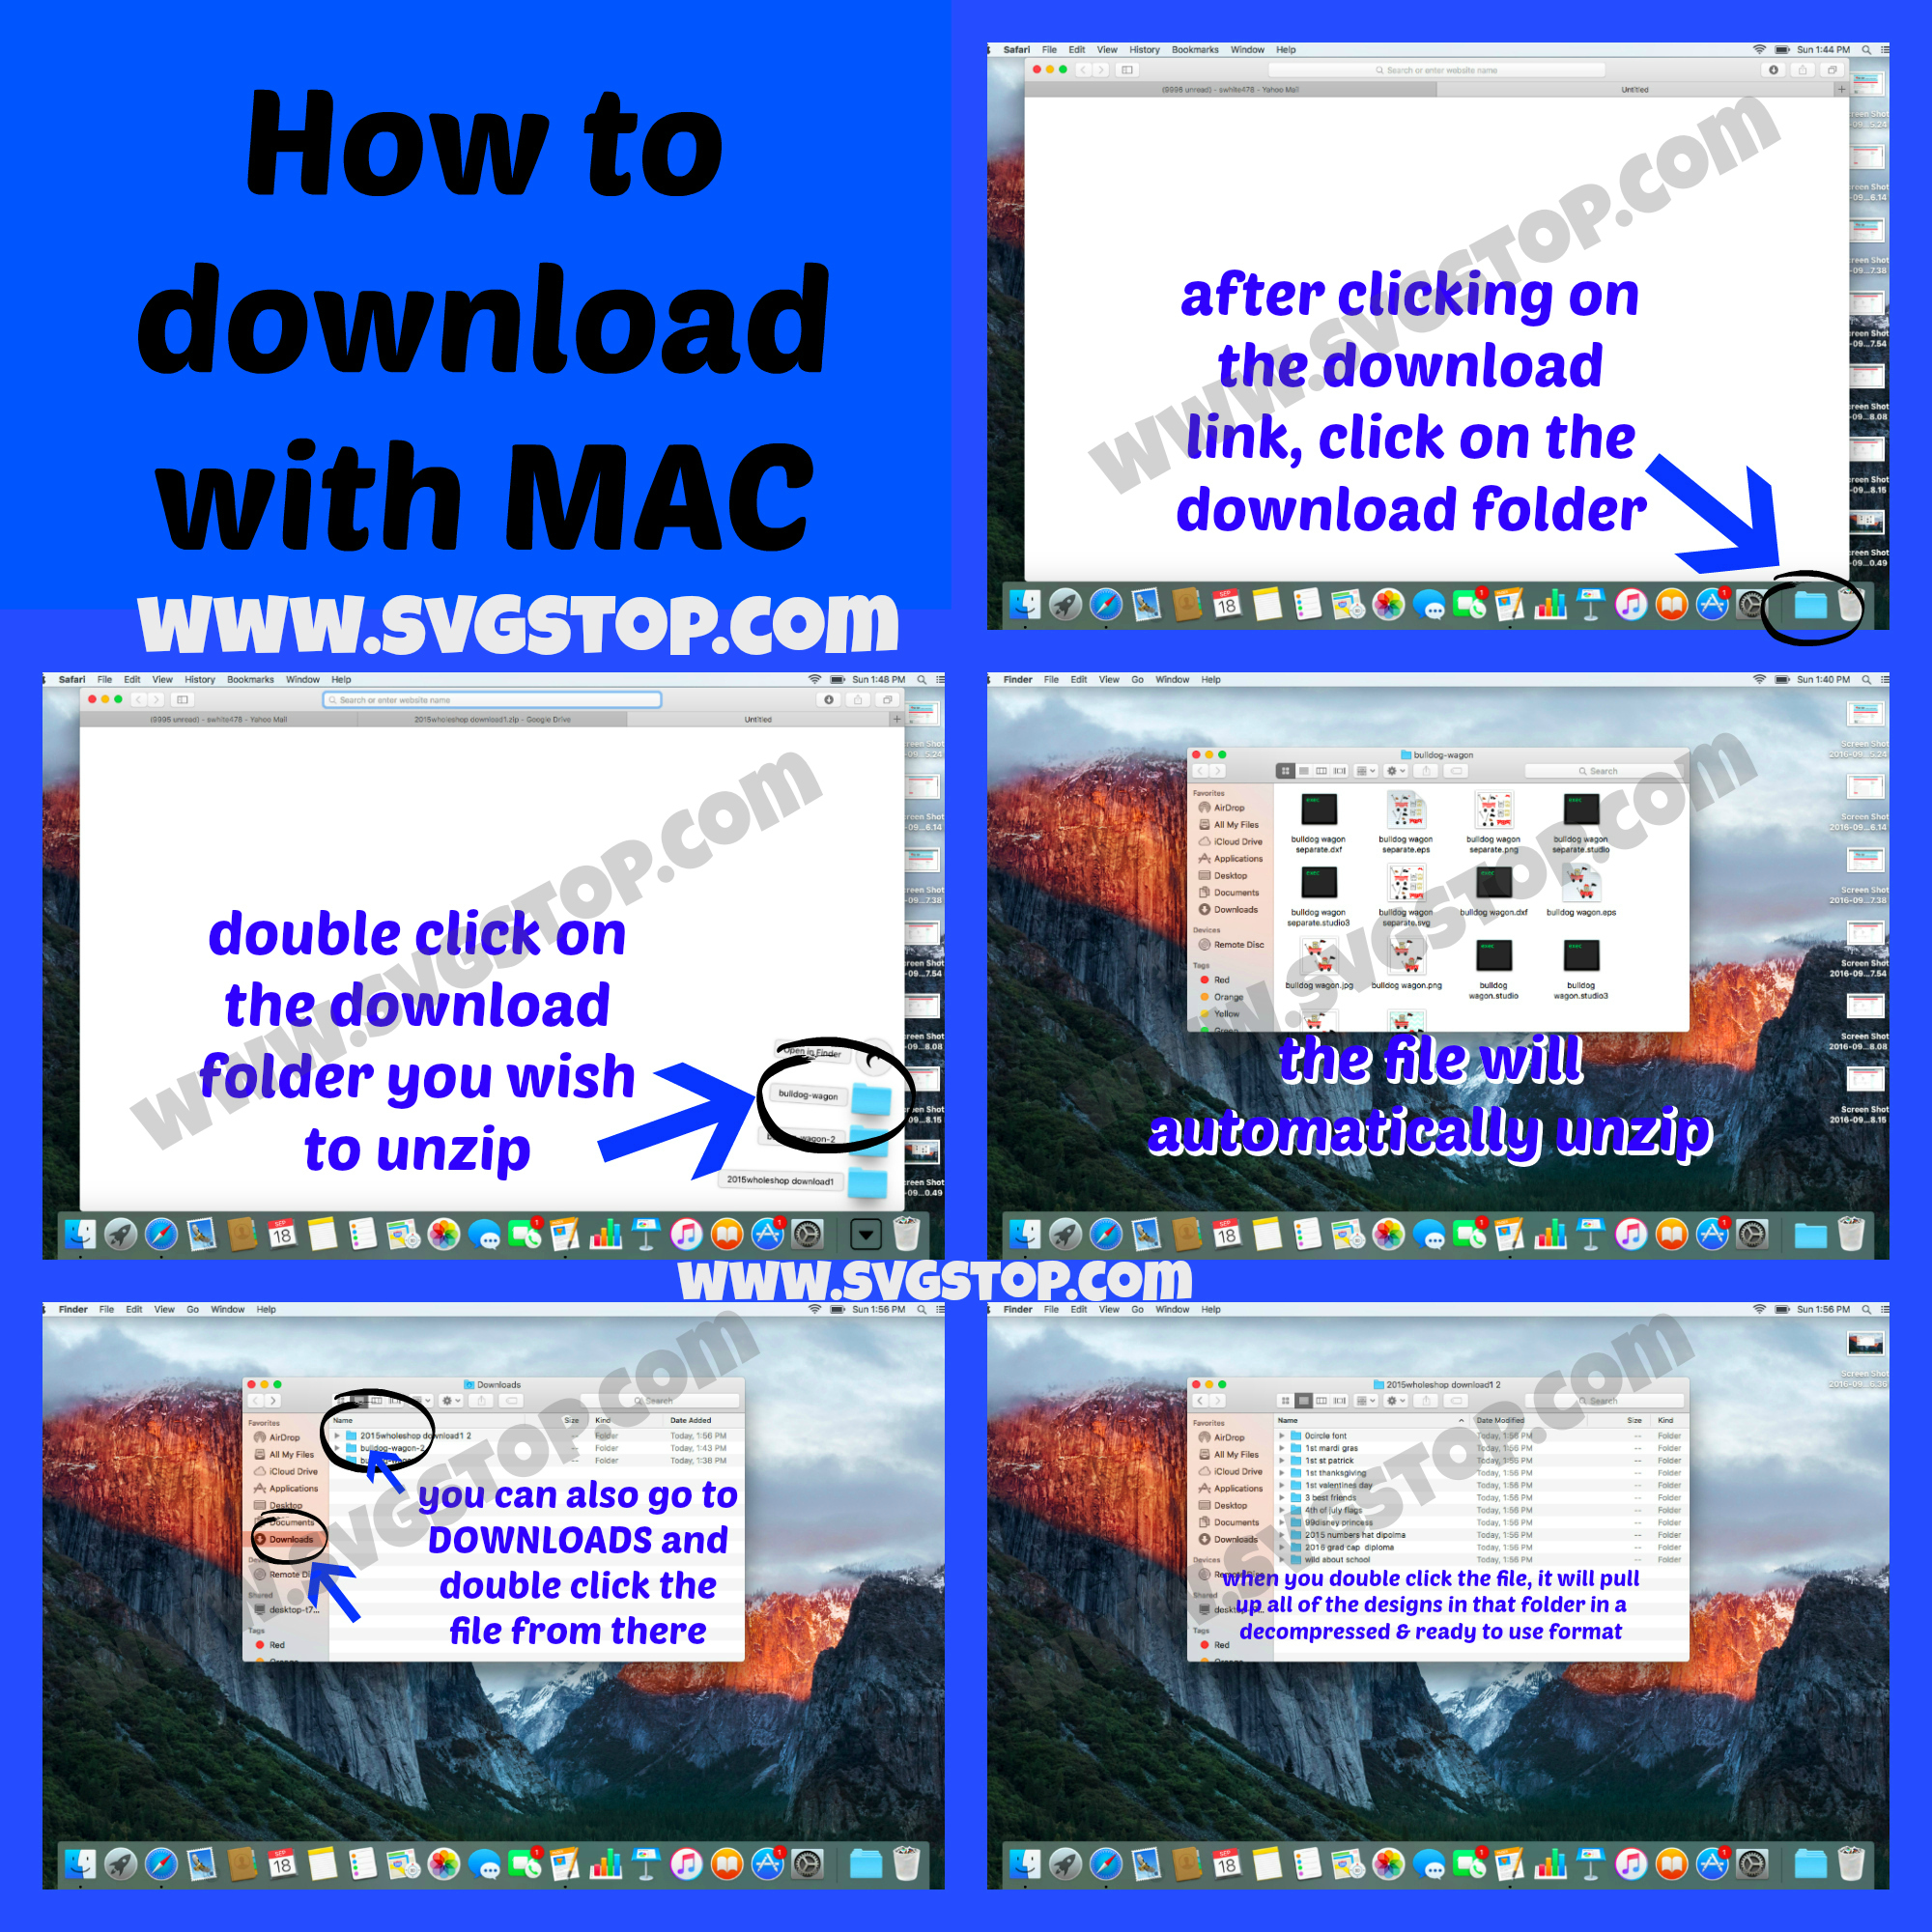 00download-with-mac02.jpg